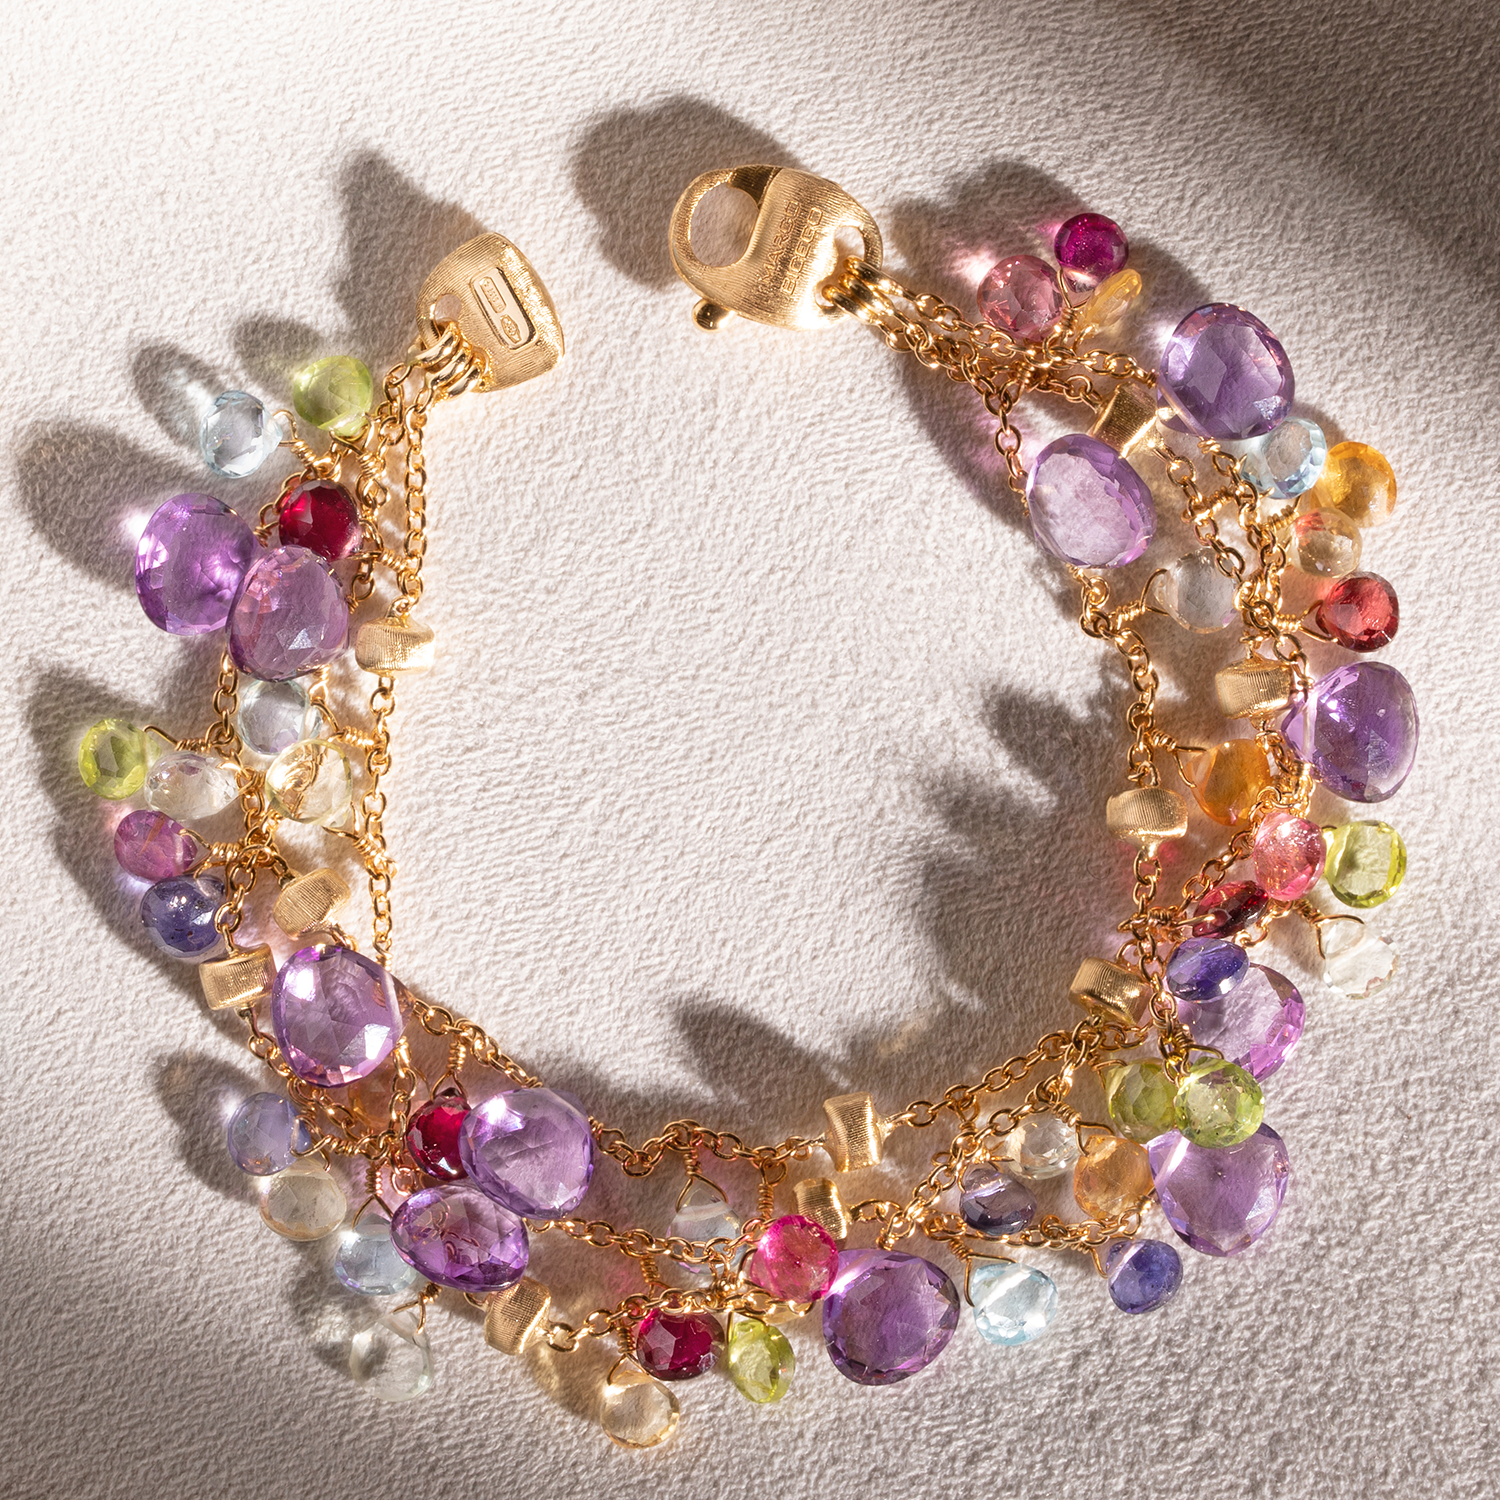 Products in the Bracelets collection